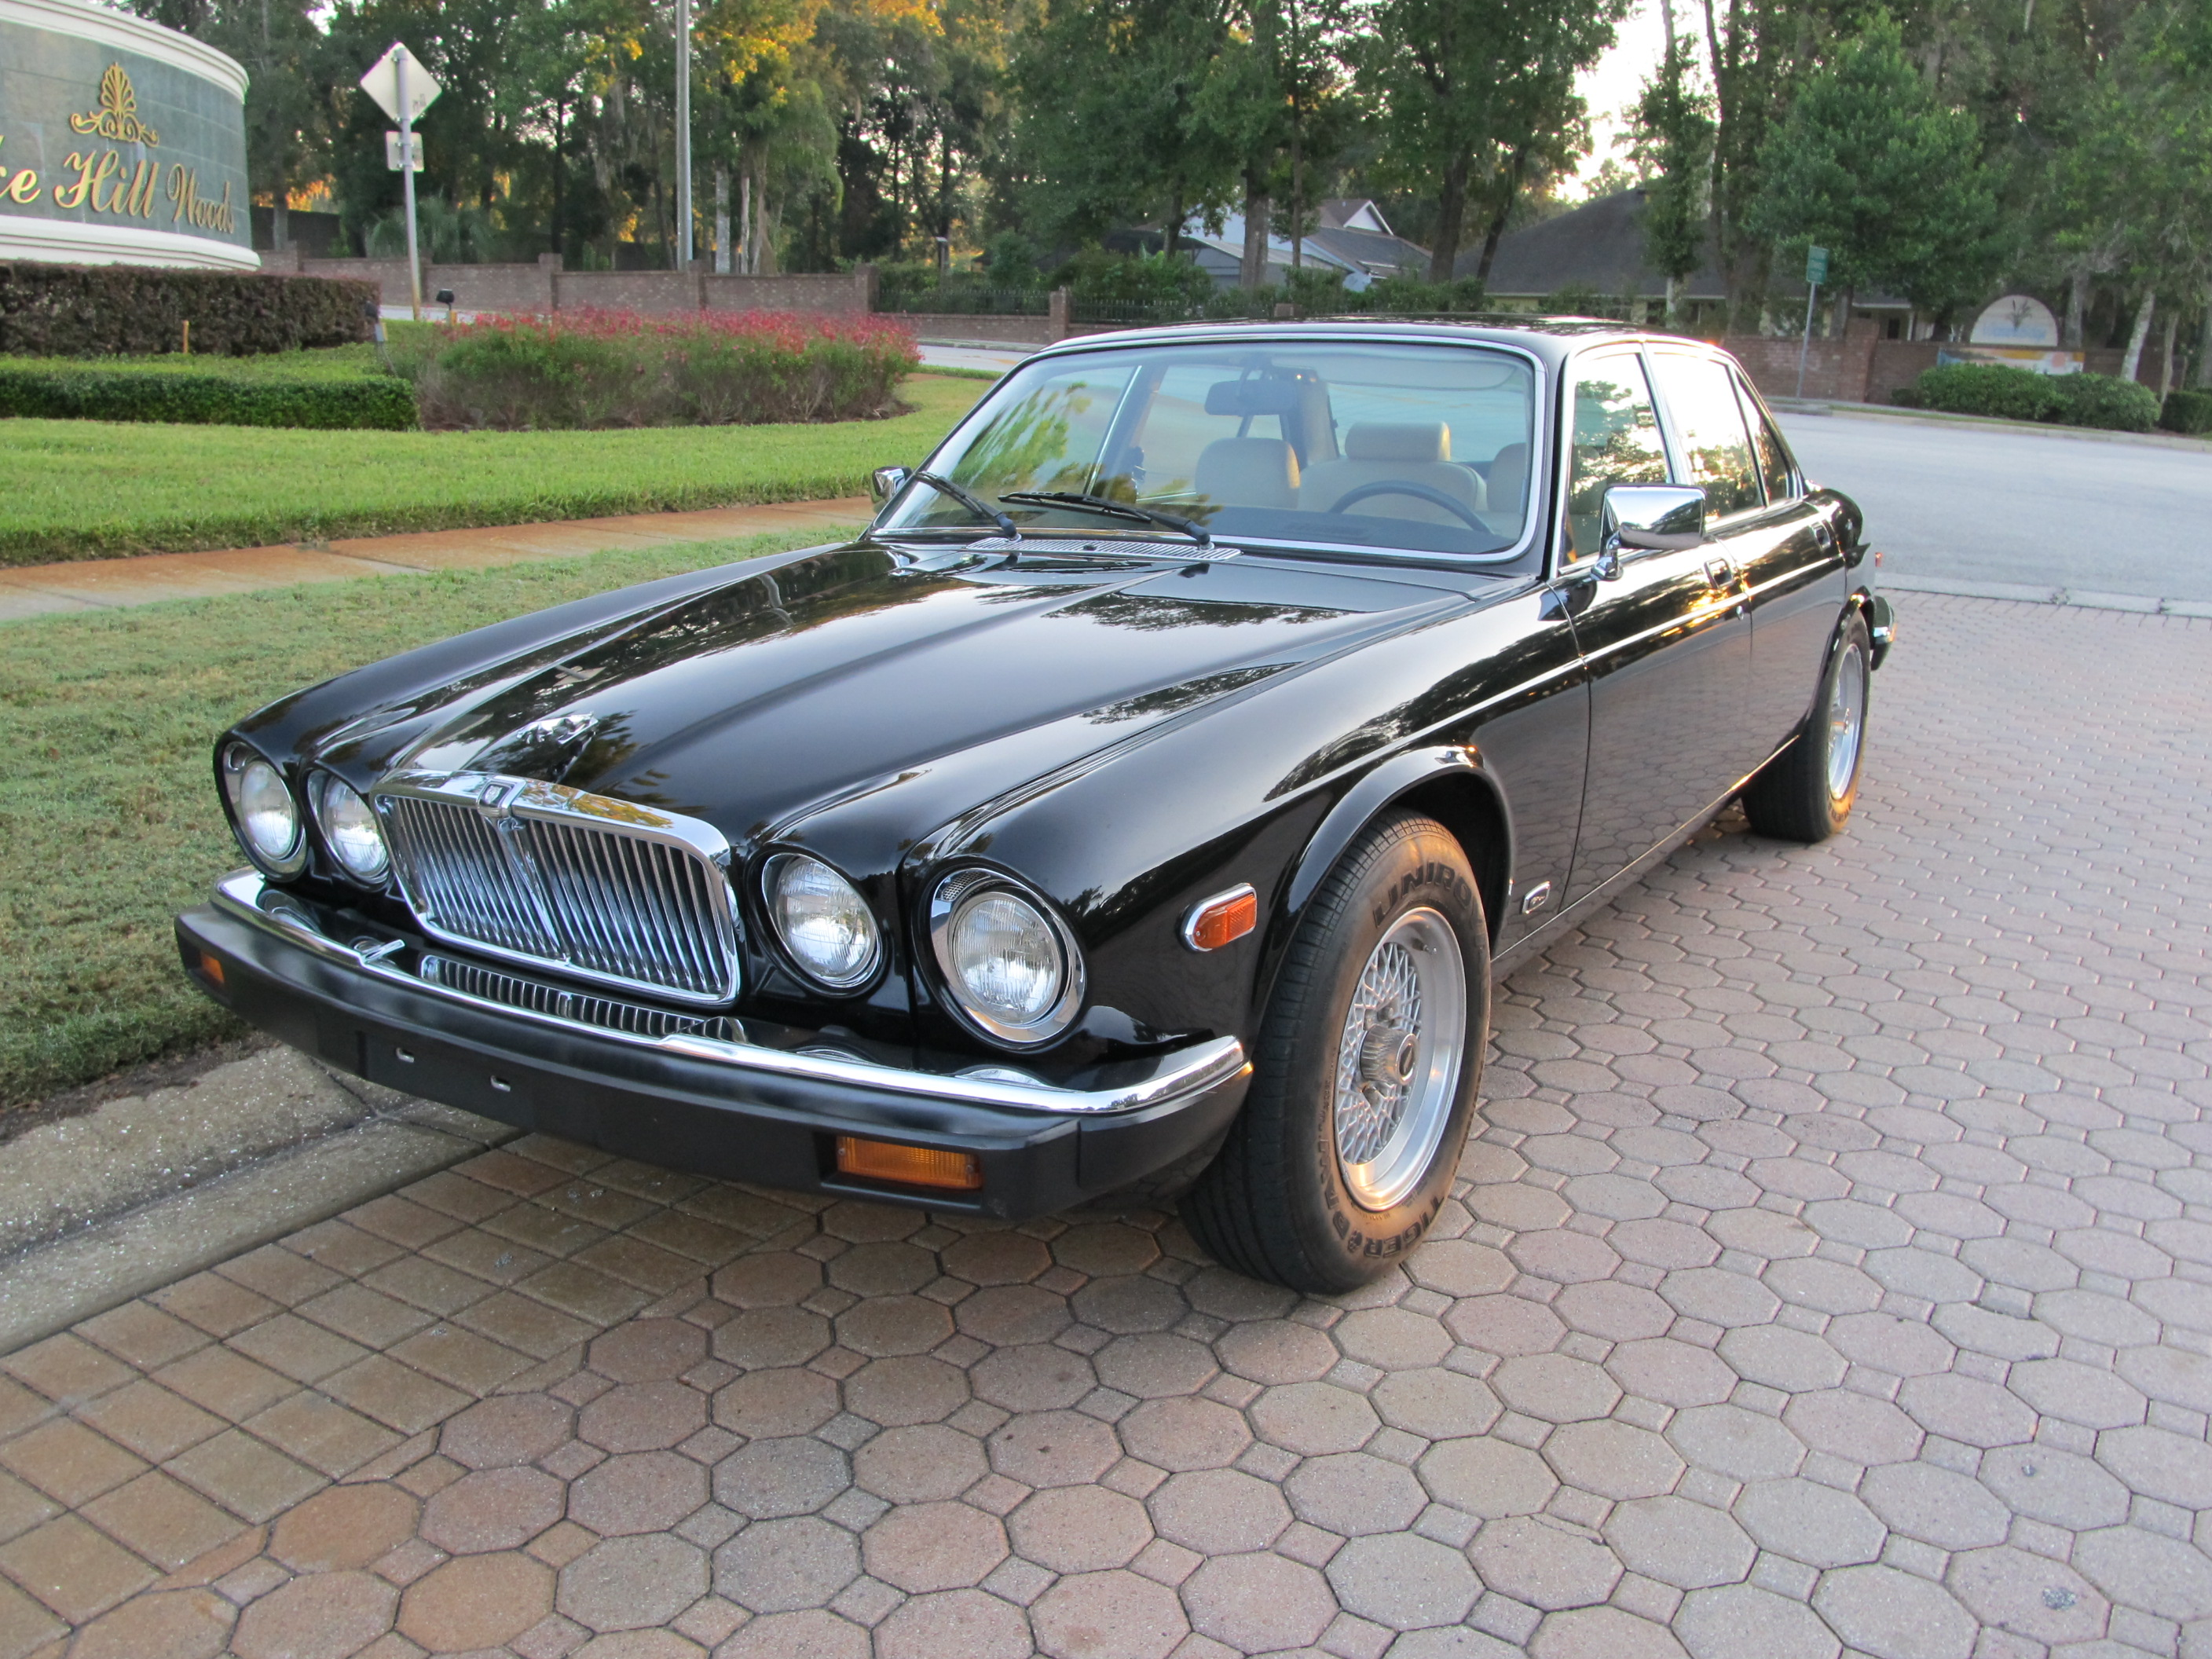 1987 Jaguar Xj6 Vanden Plas Sold Vantage Sports Cars